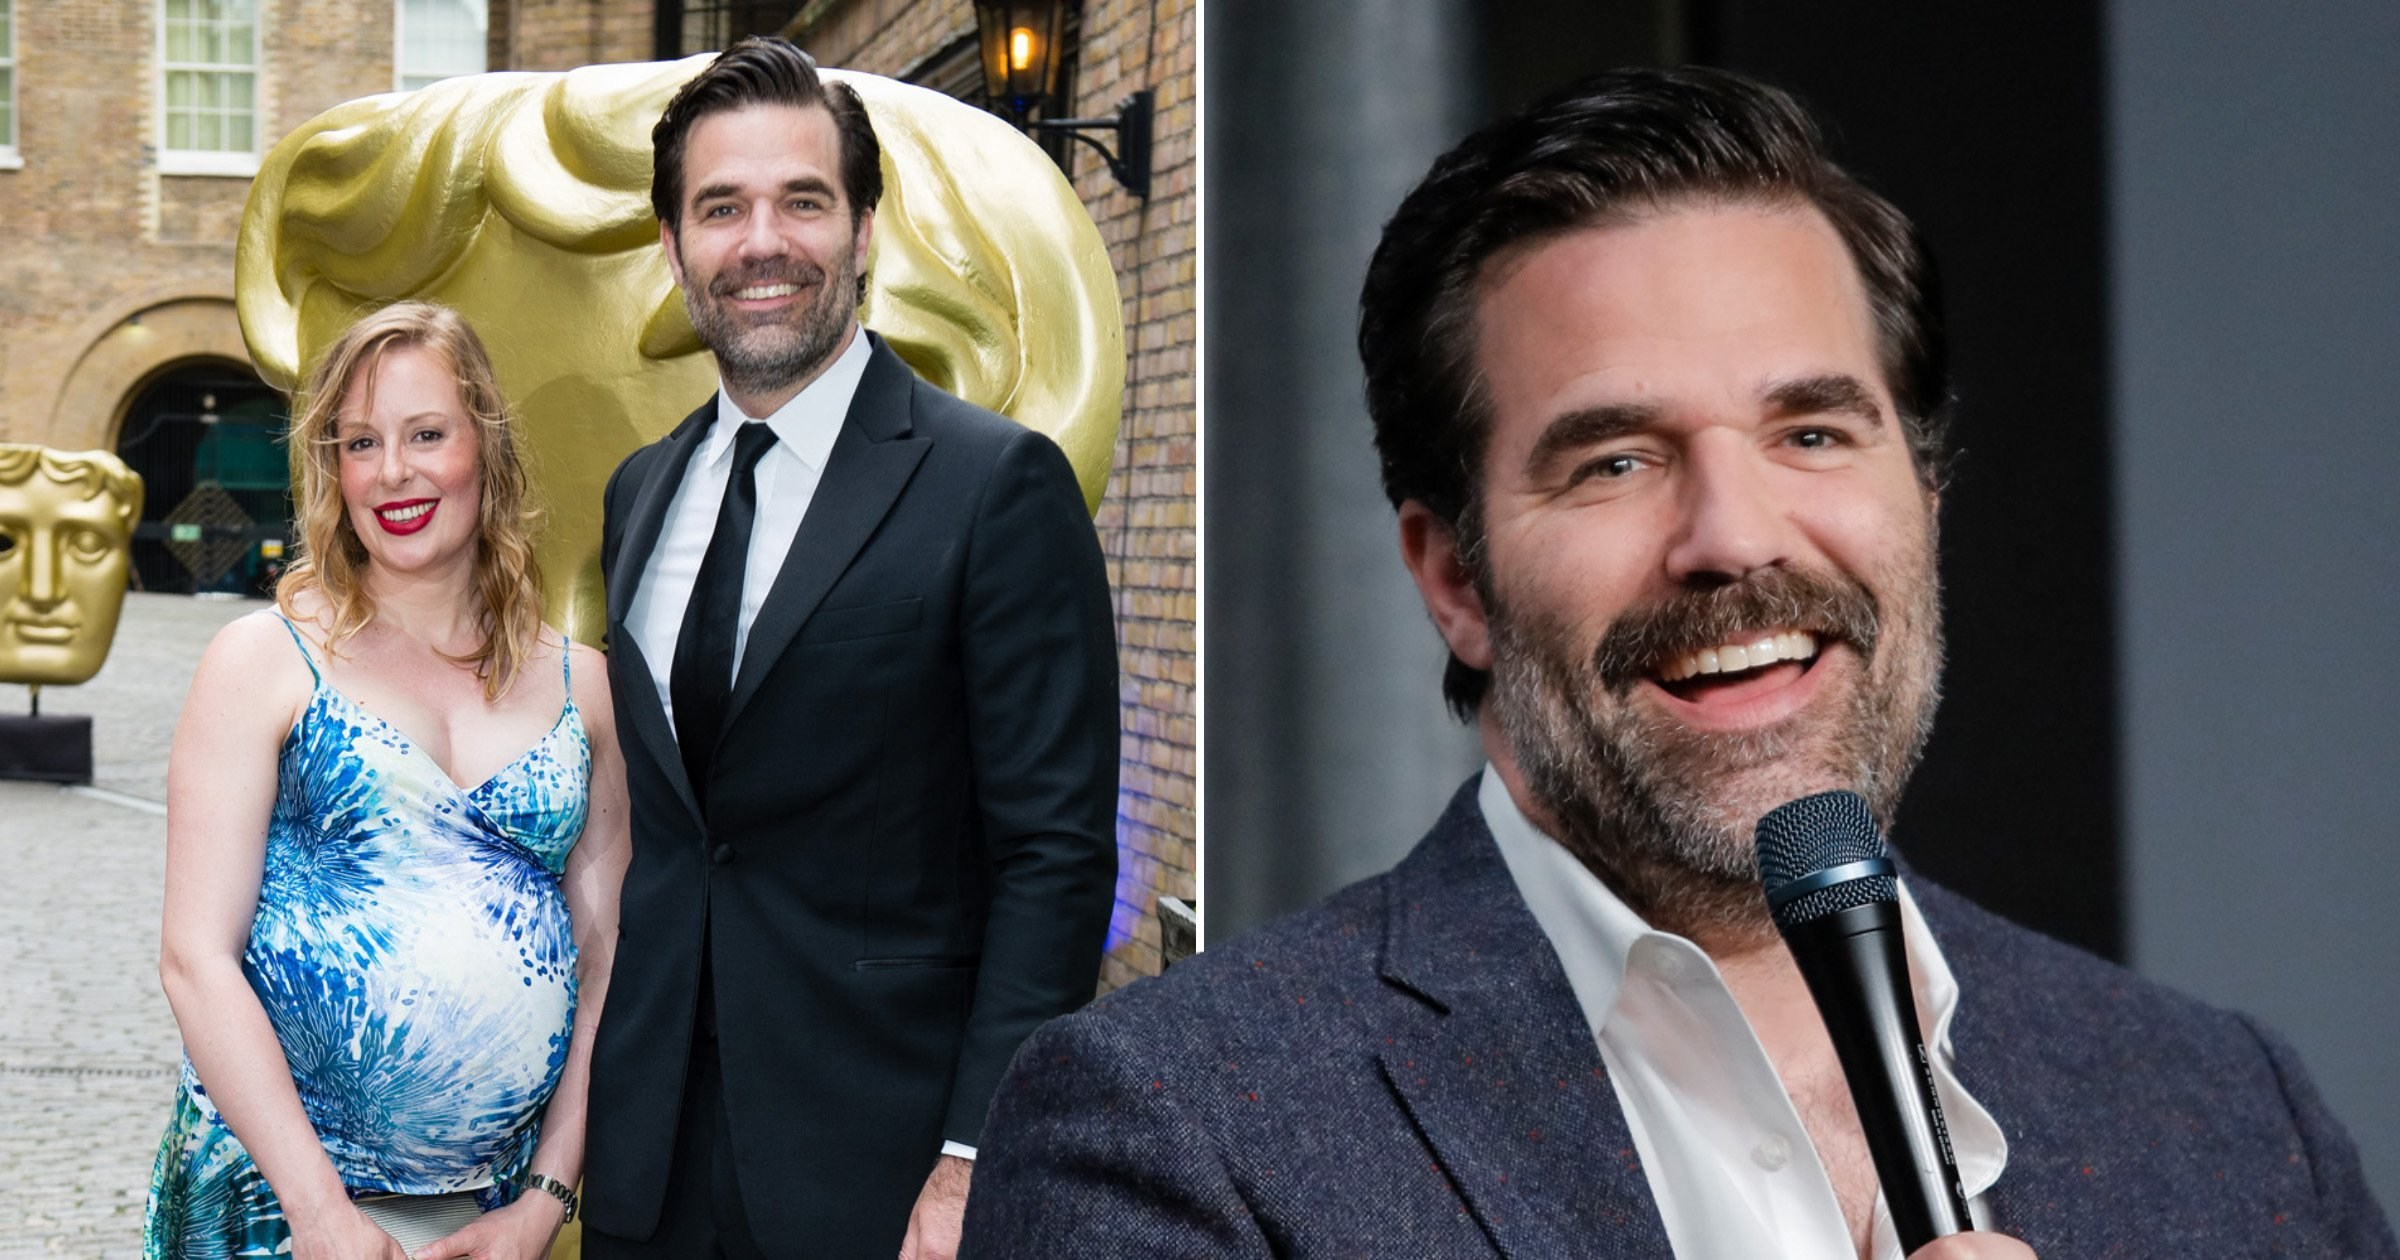 Rob Delaney says a vasectomy was 'the least he could do' after his wife gave birth to four kids